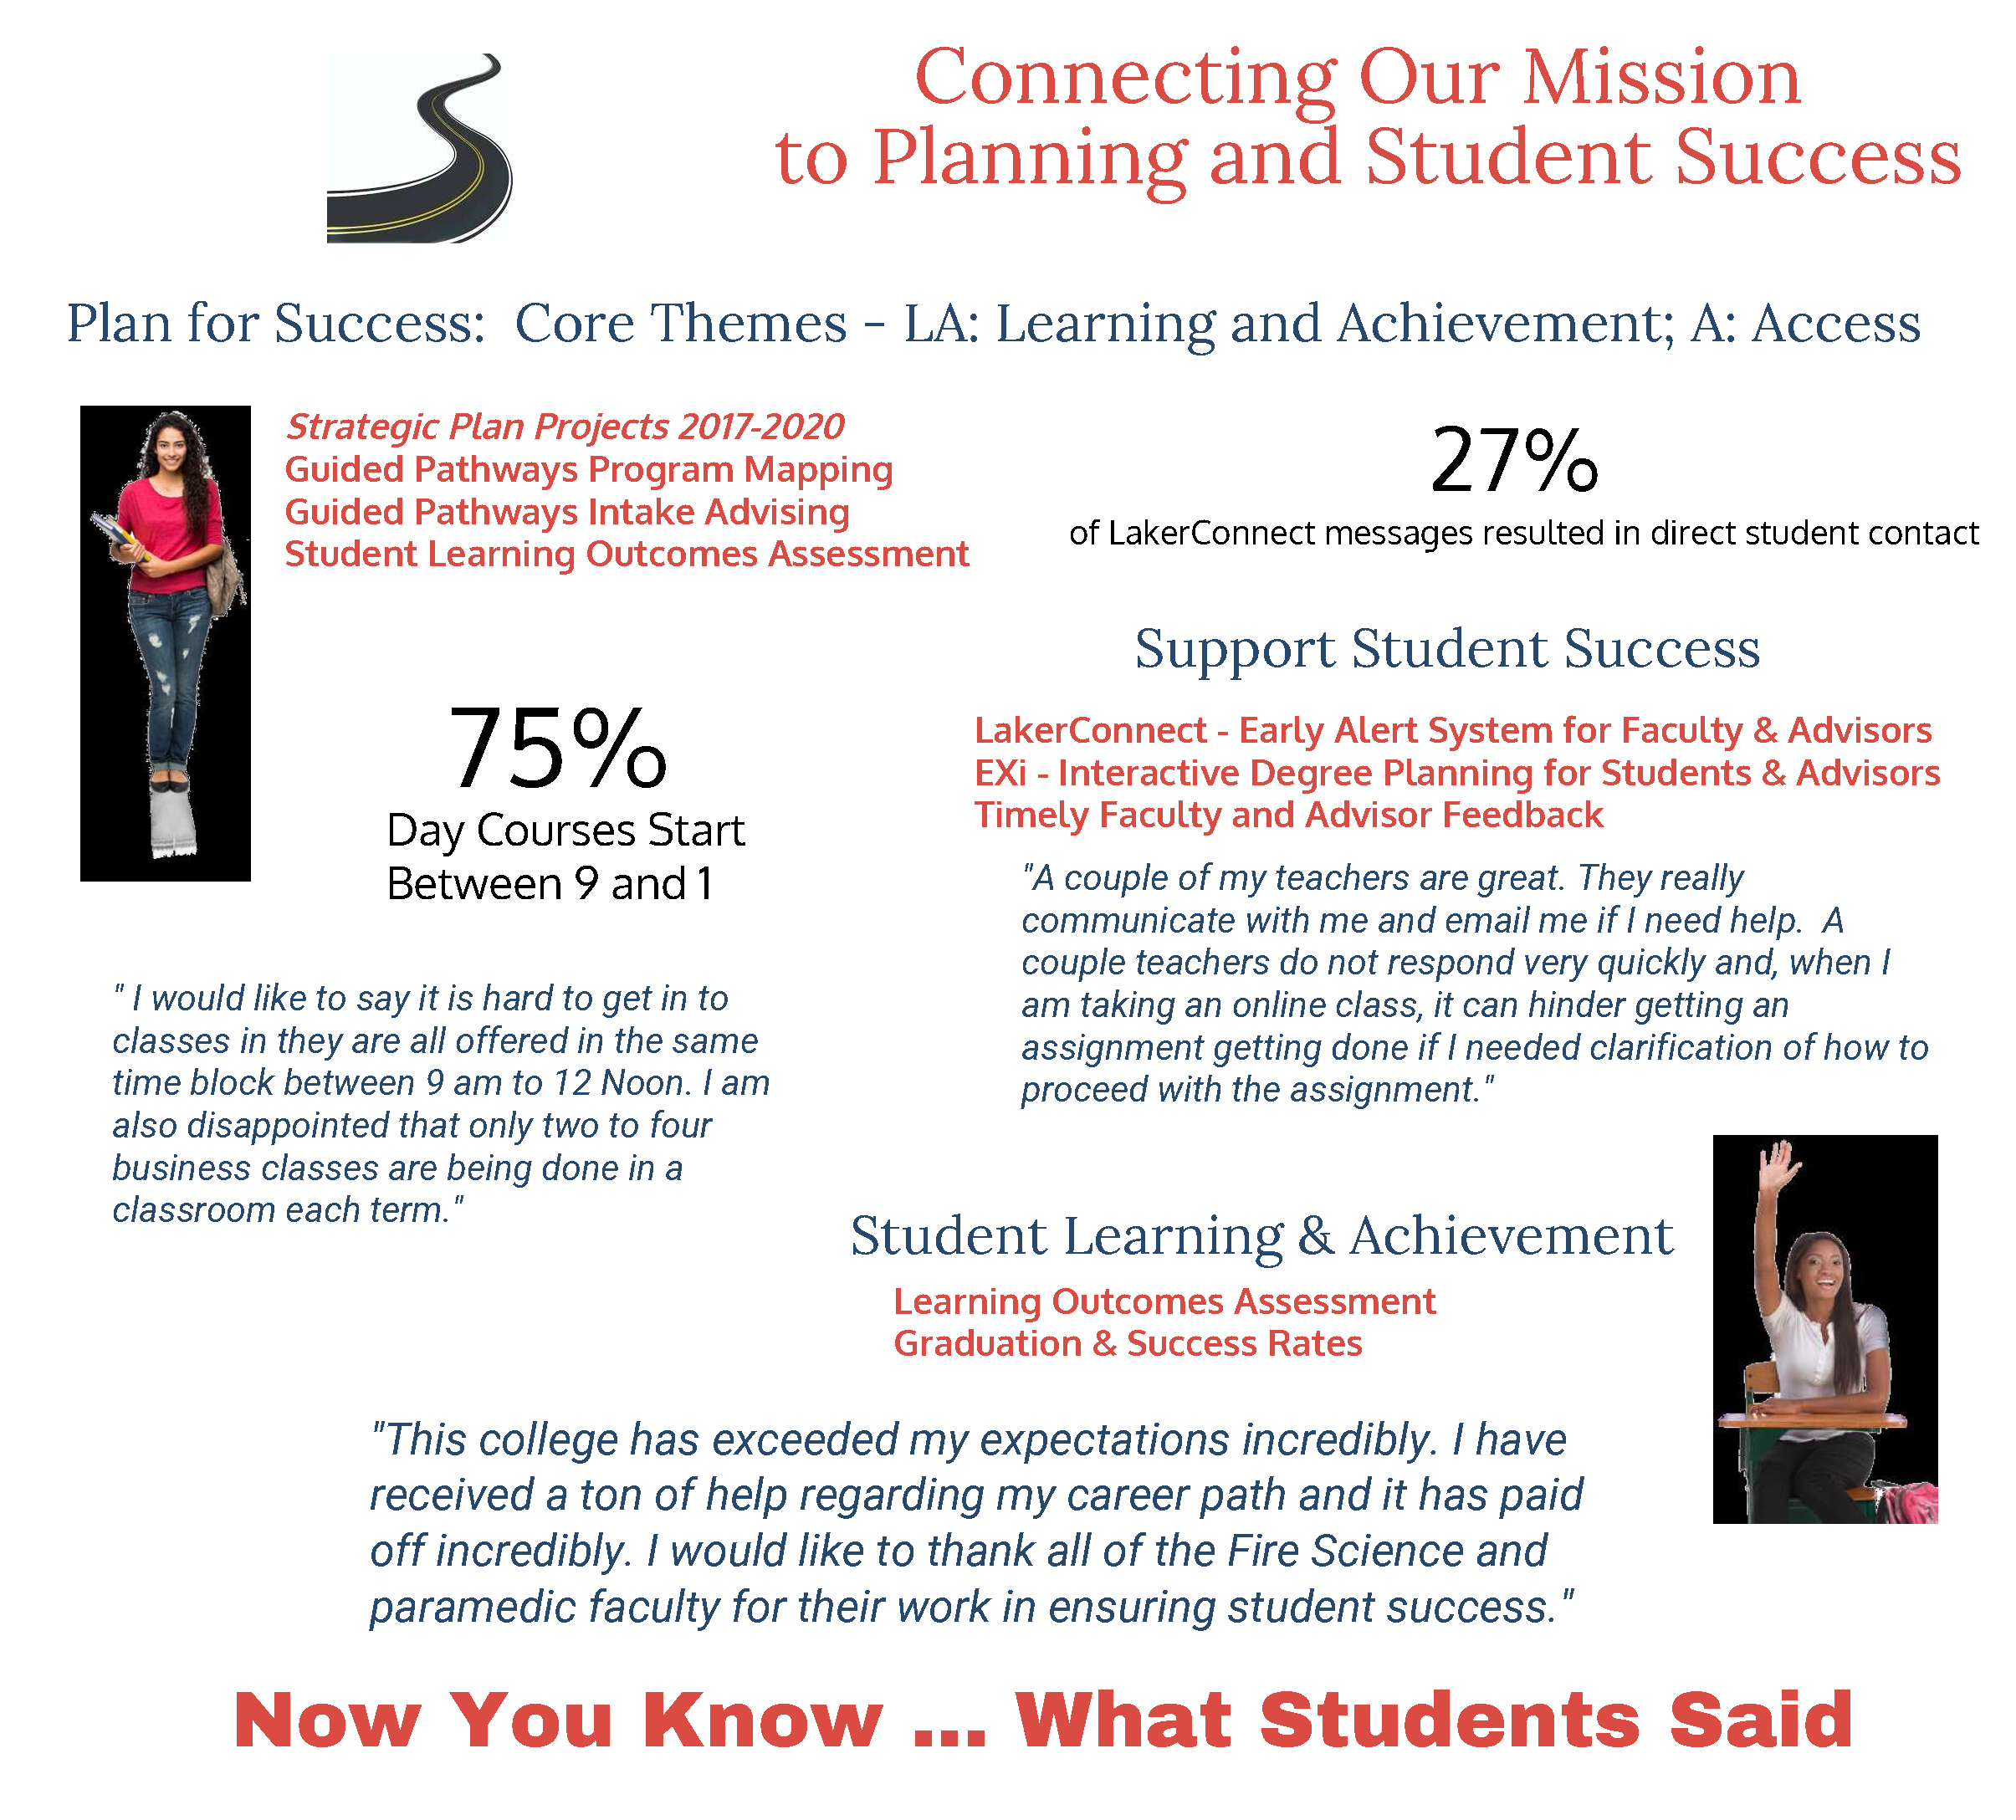 SSI Instructional Areas Student Response Highlights